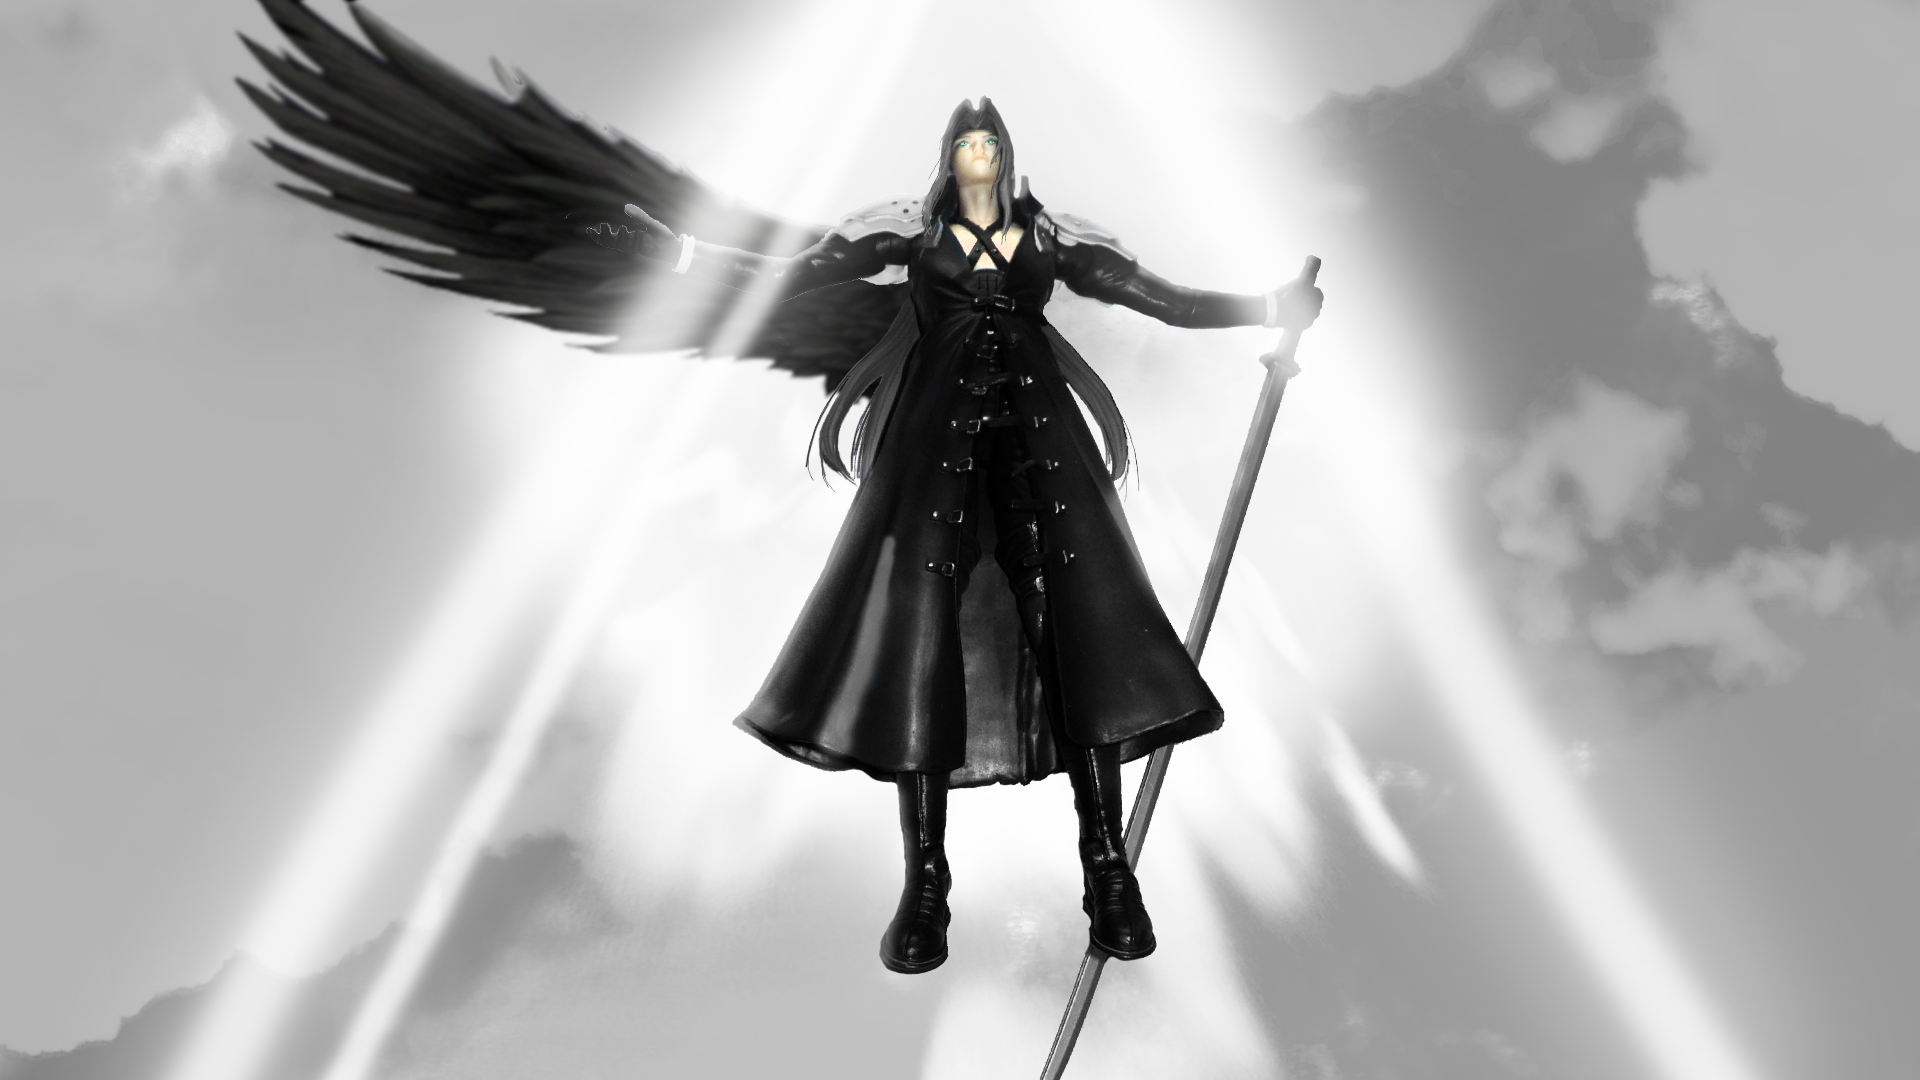 Sephiroth: The one Winged Angel by SEELE-1 on DeviantArt Seele Wallpaper